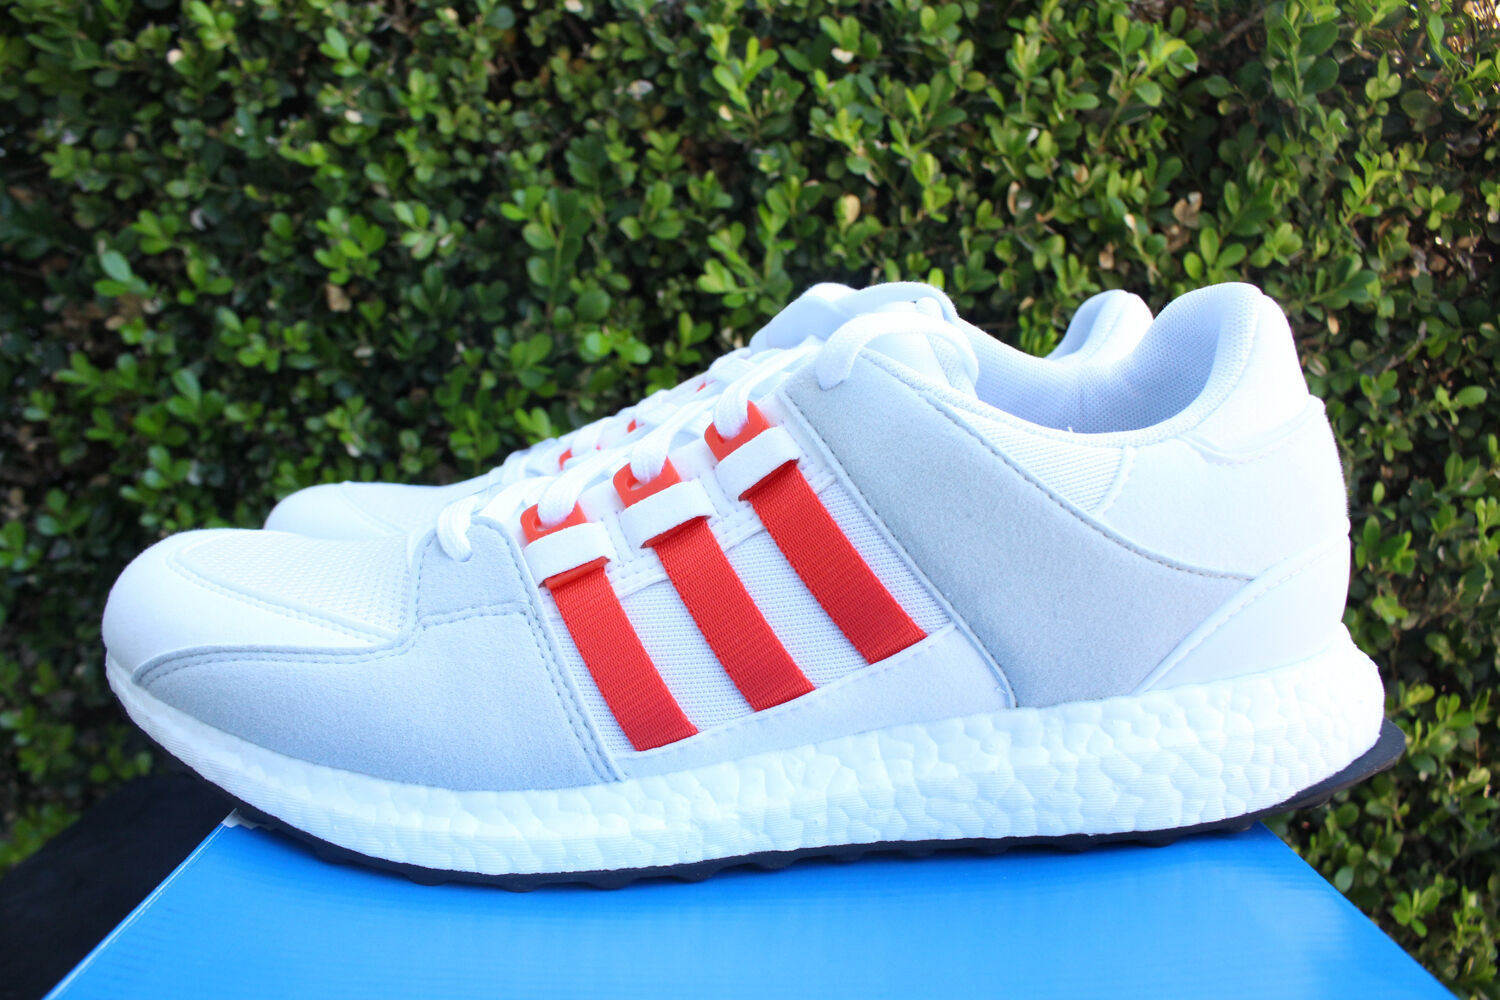 ADIDAS EQT SUPPORT ULTRA SZ 8 WHITE BOLD ORANGE GREY BY9532